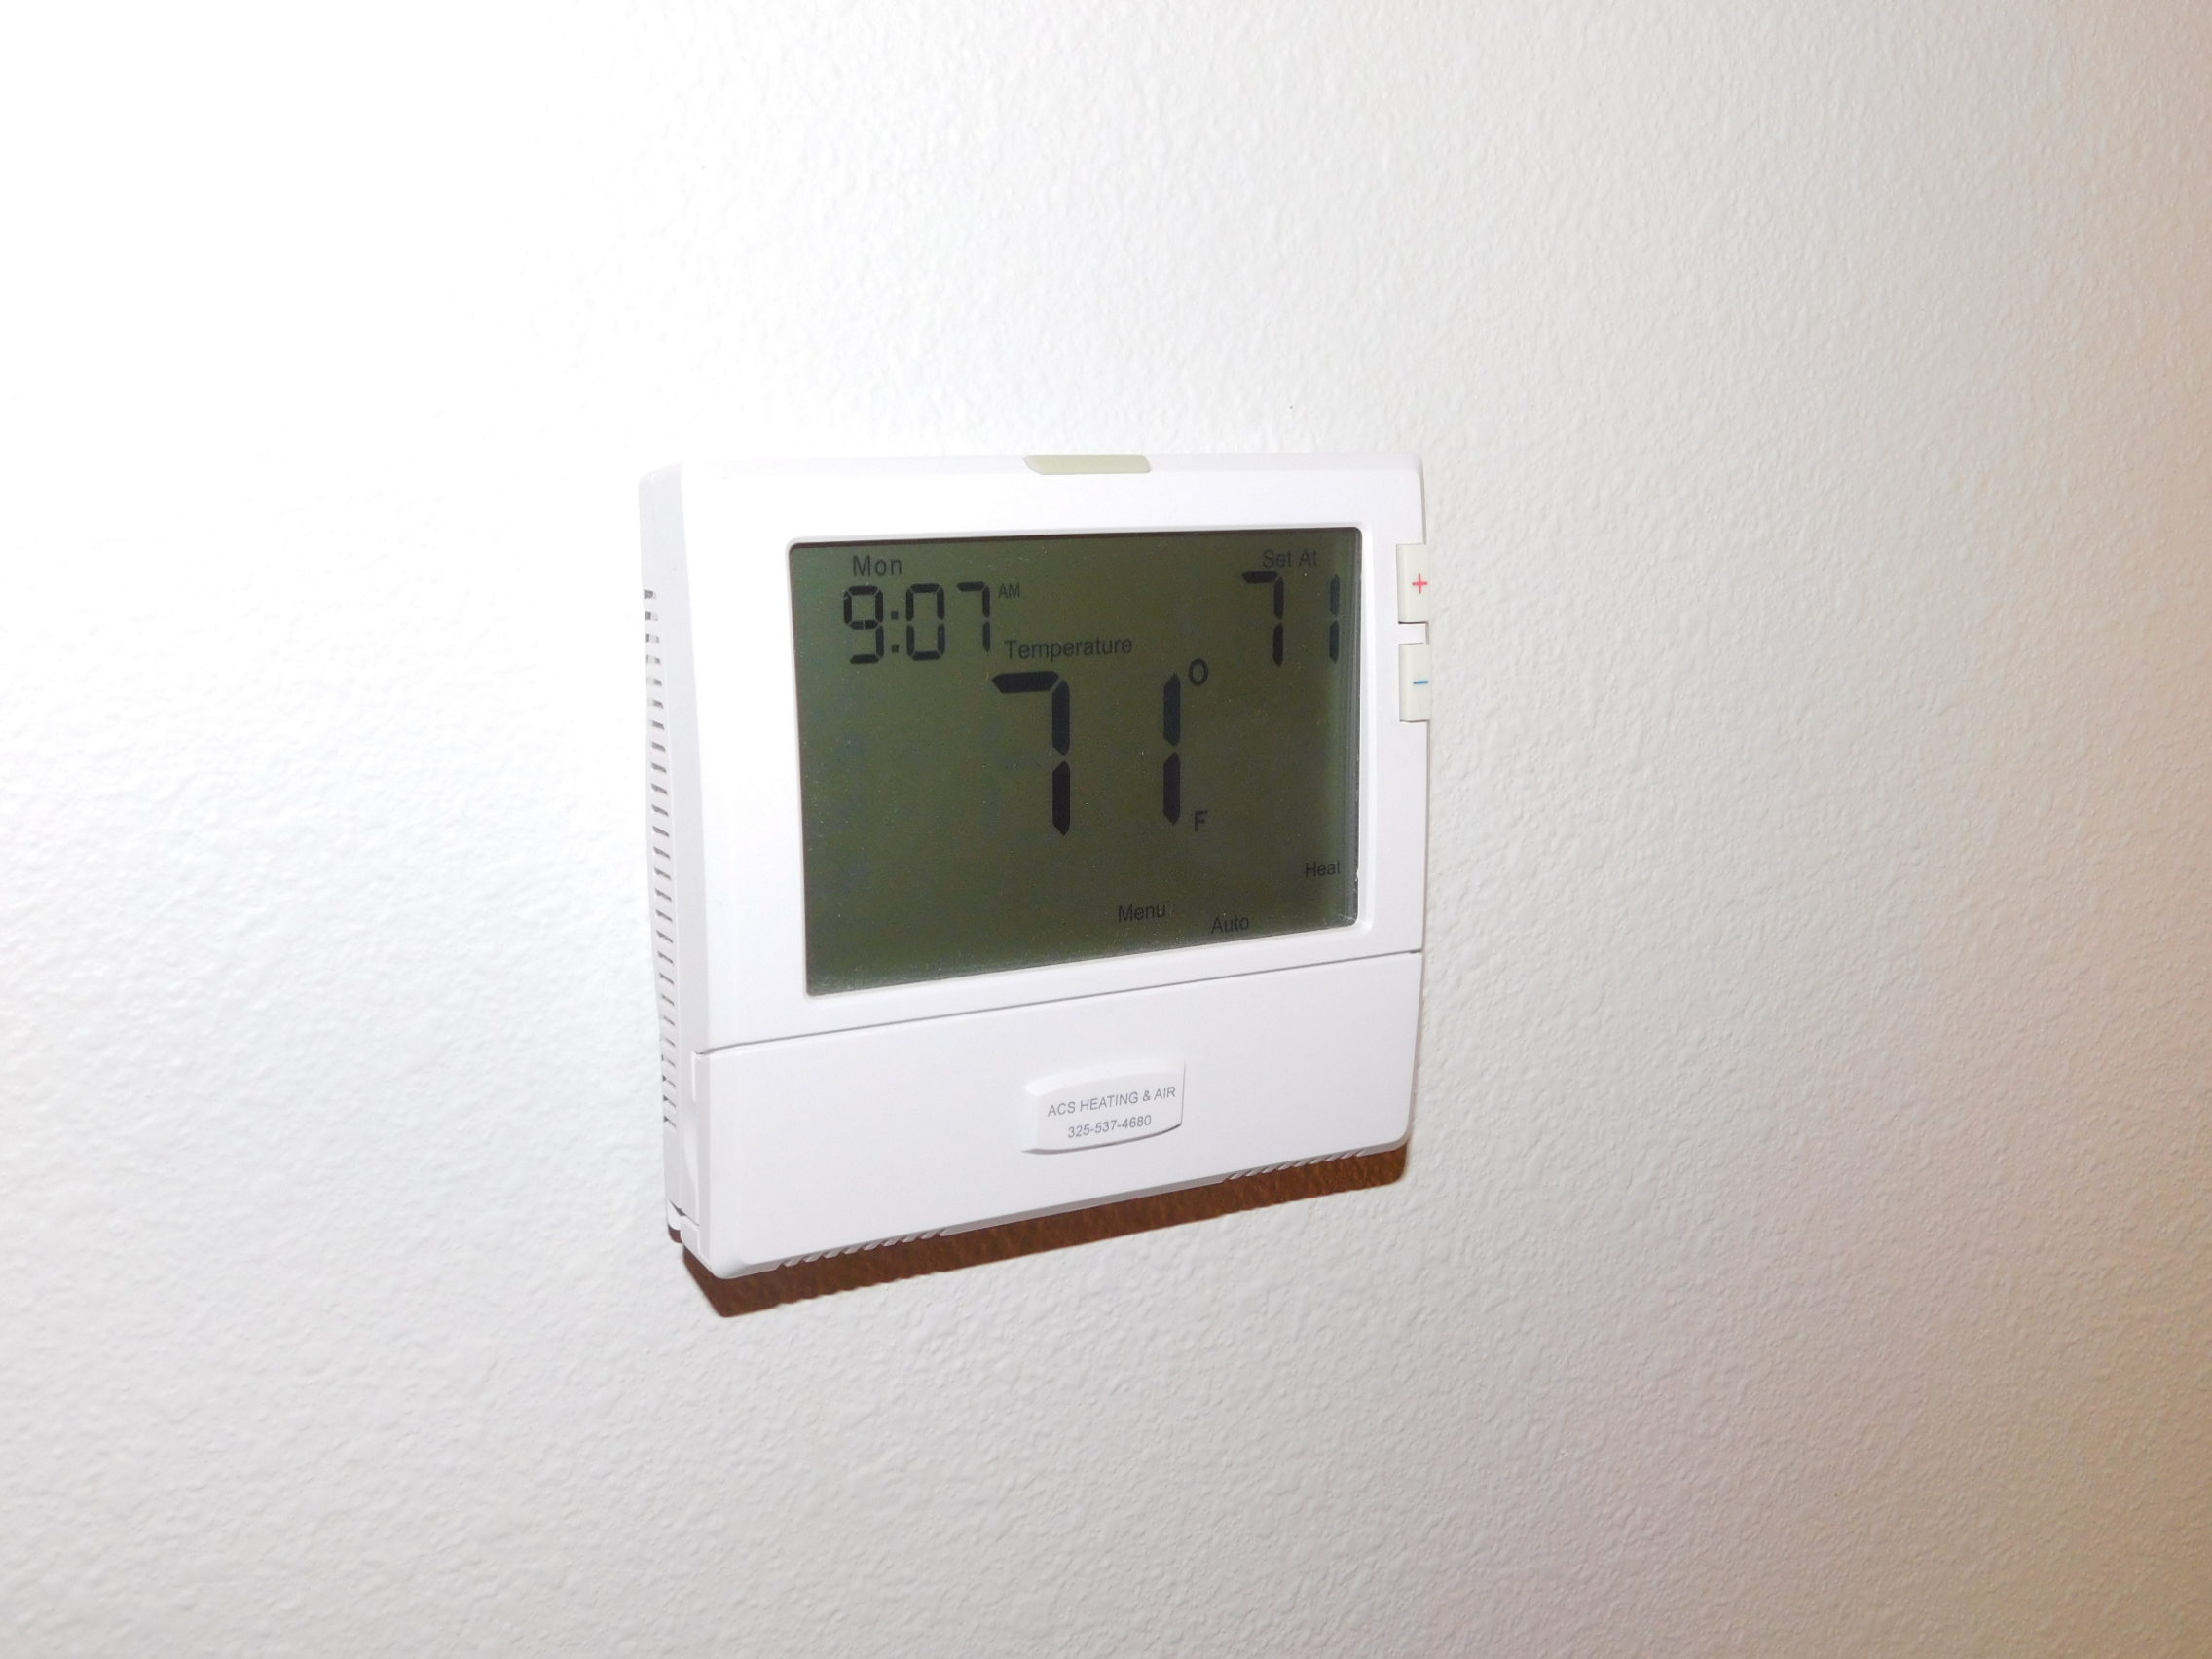 Lower thermostat setting